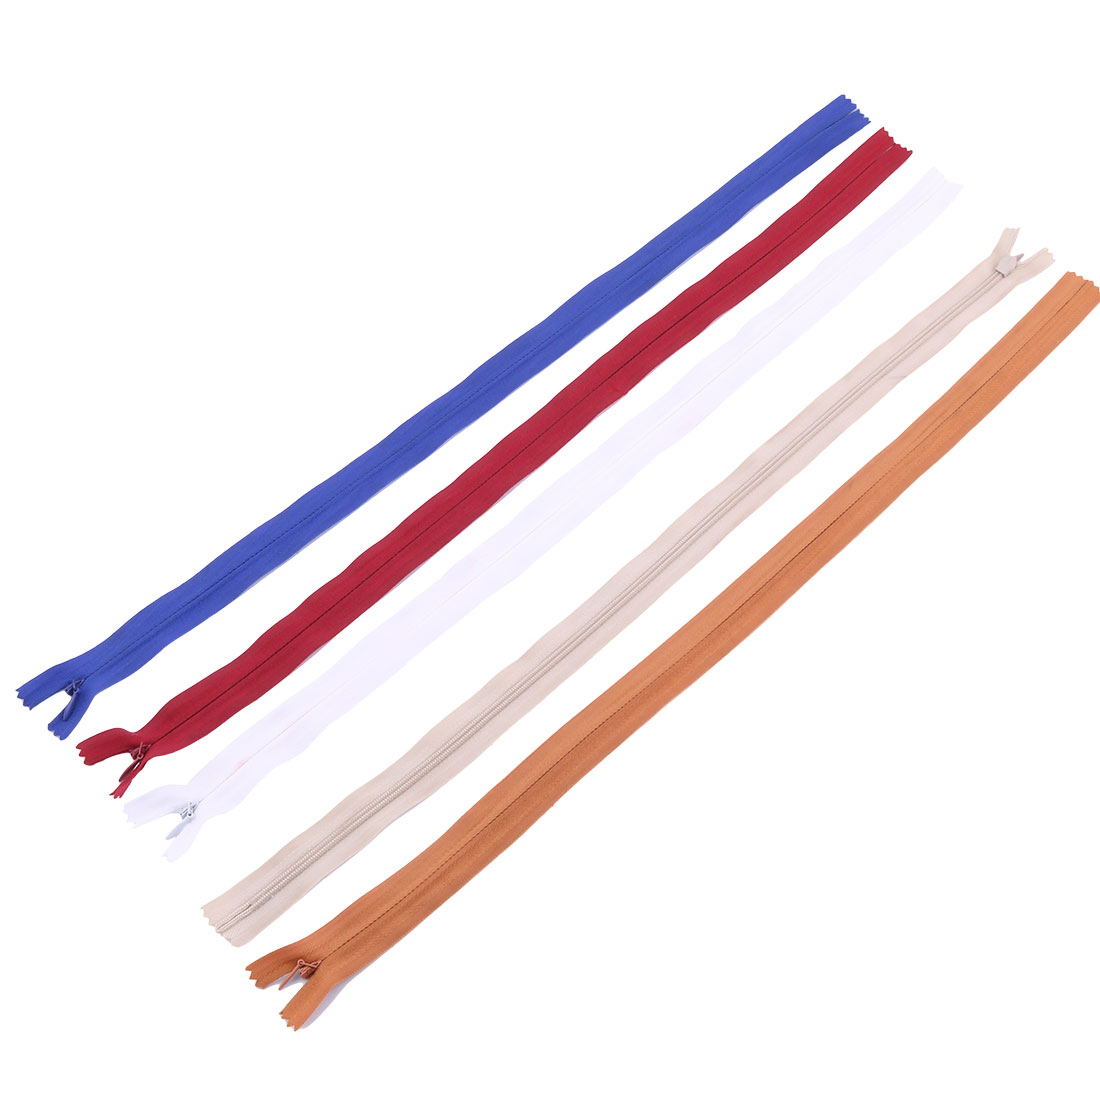 Tailor Sewer Nylon Invisible Smooth Zippers Assorted Colors 50cm Length 5pcs